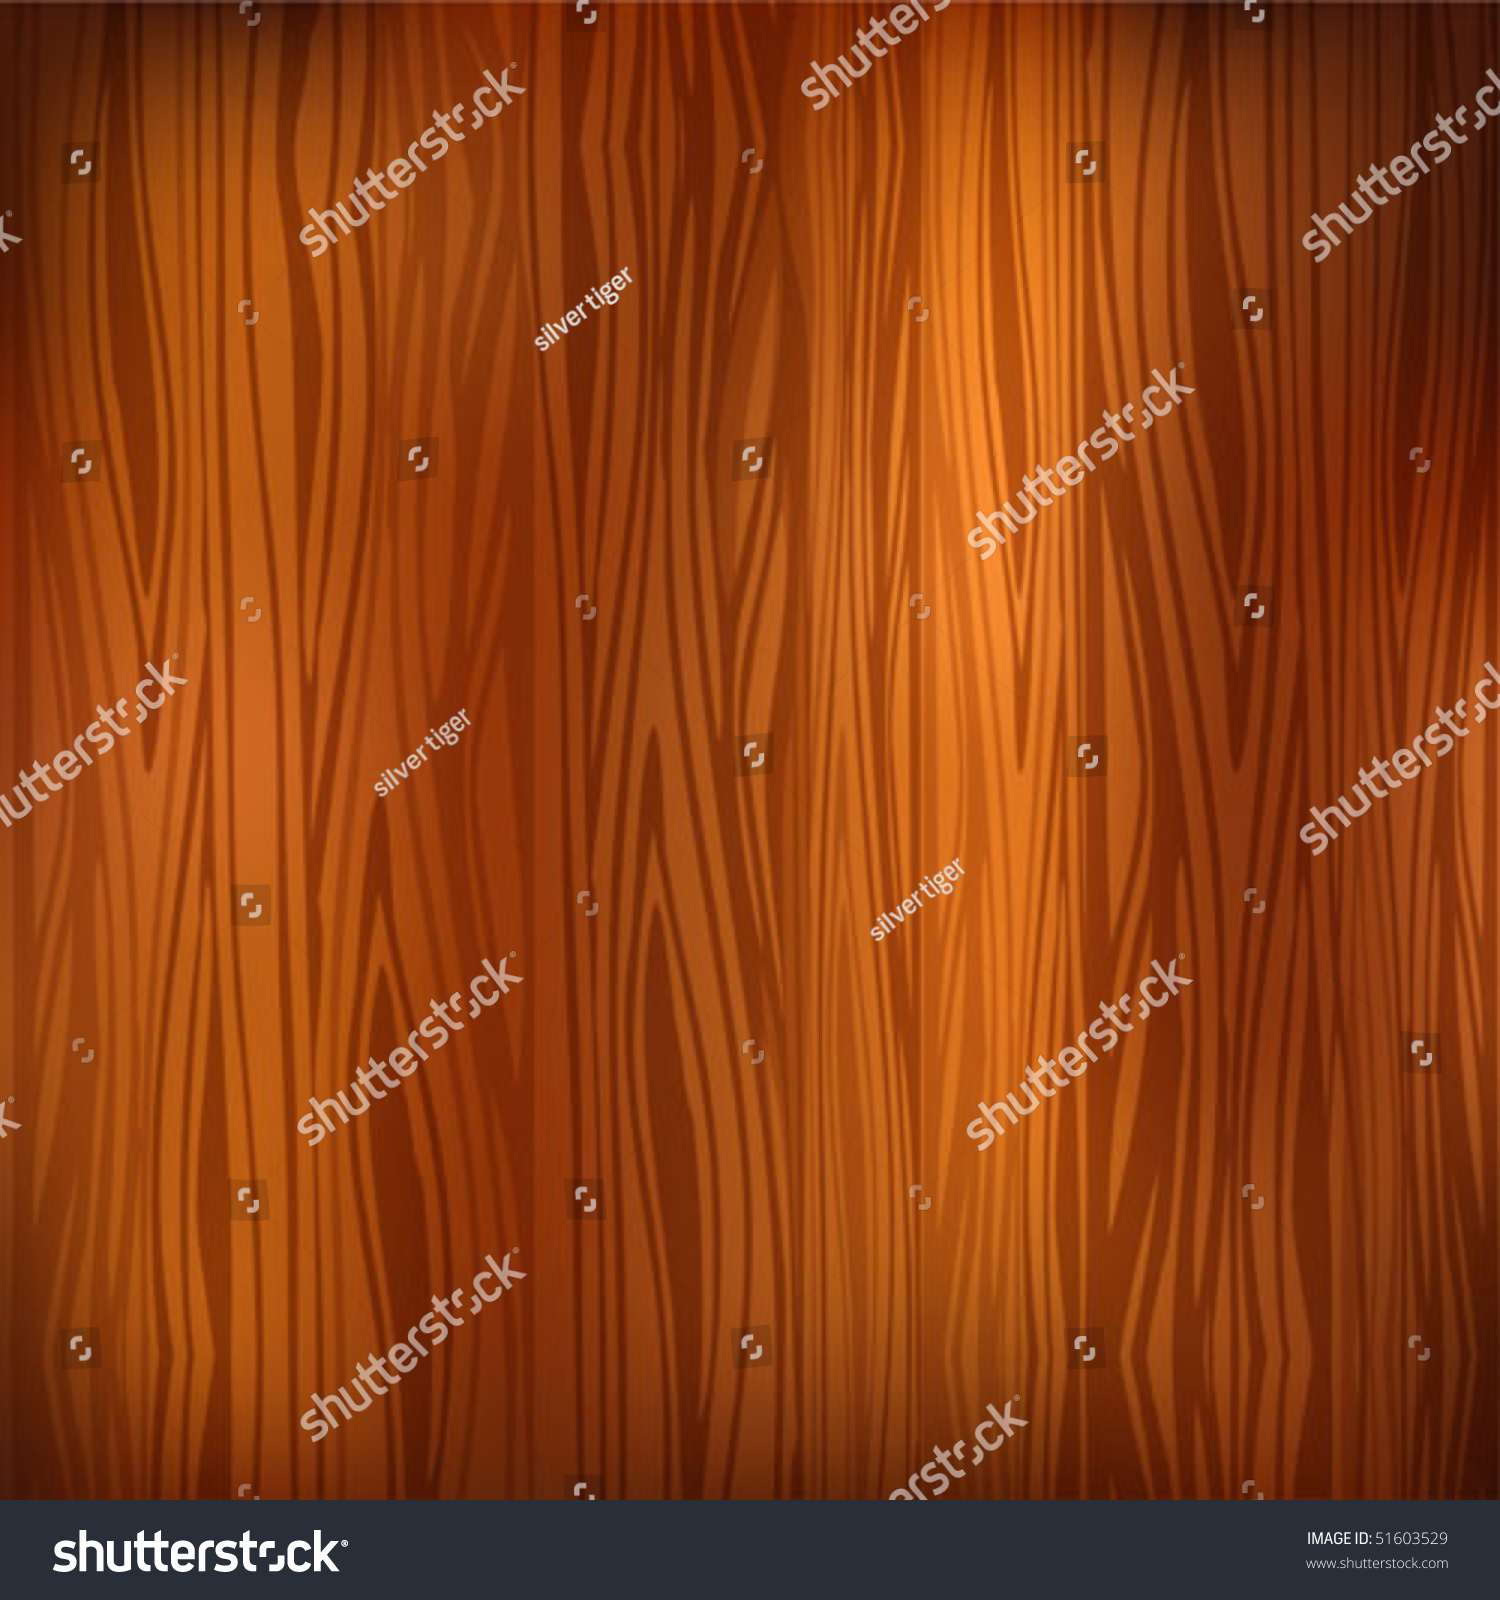 Dark Wood Texture Background Stock Vector 51603529 ...